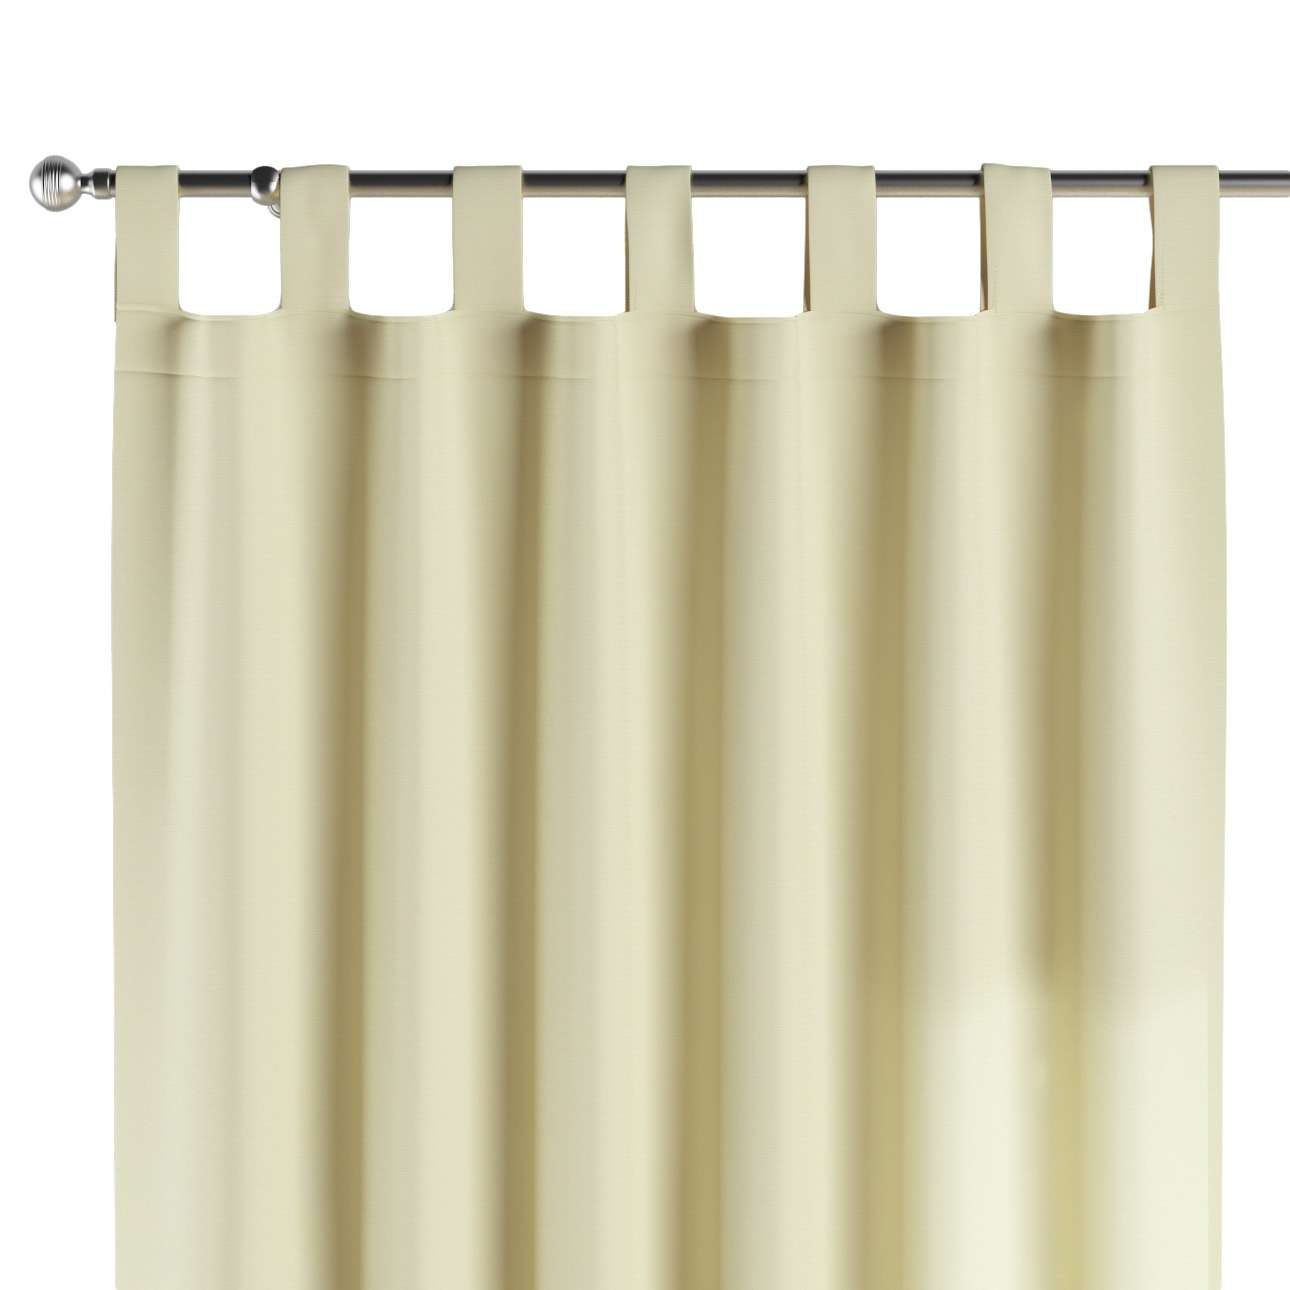 Tab top curtains 130 x 260 cm (51 x 102 inch) in collection Cotton Panama, fabric: 702-29